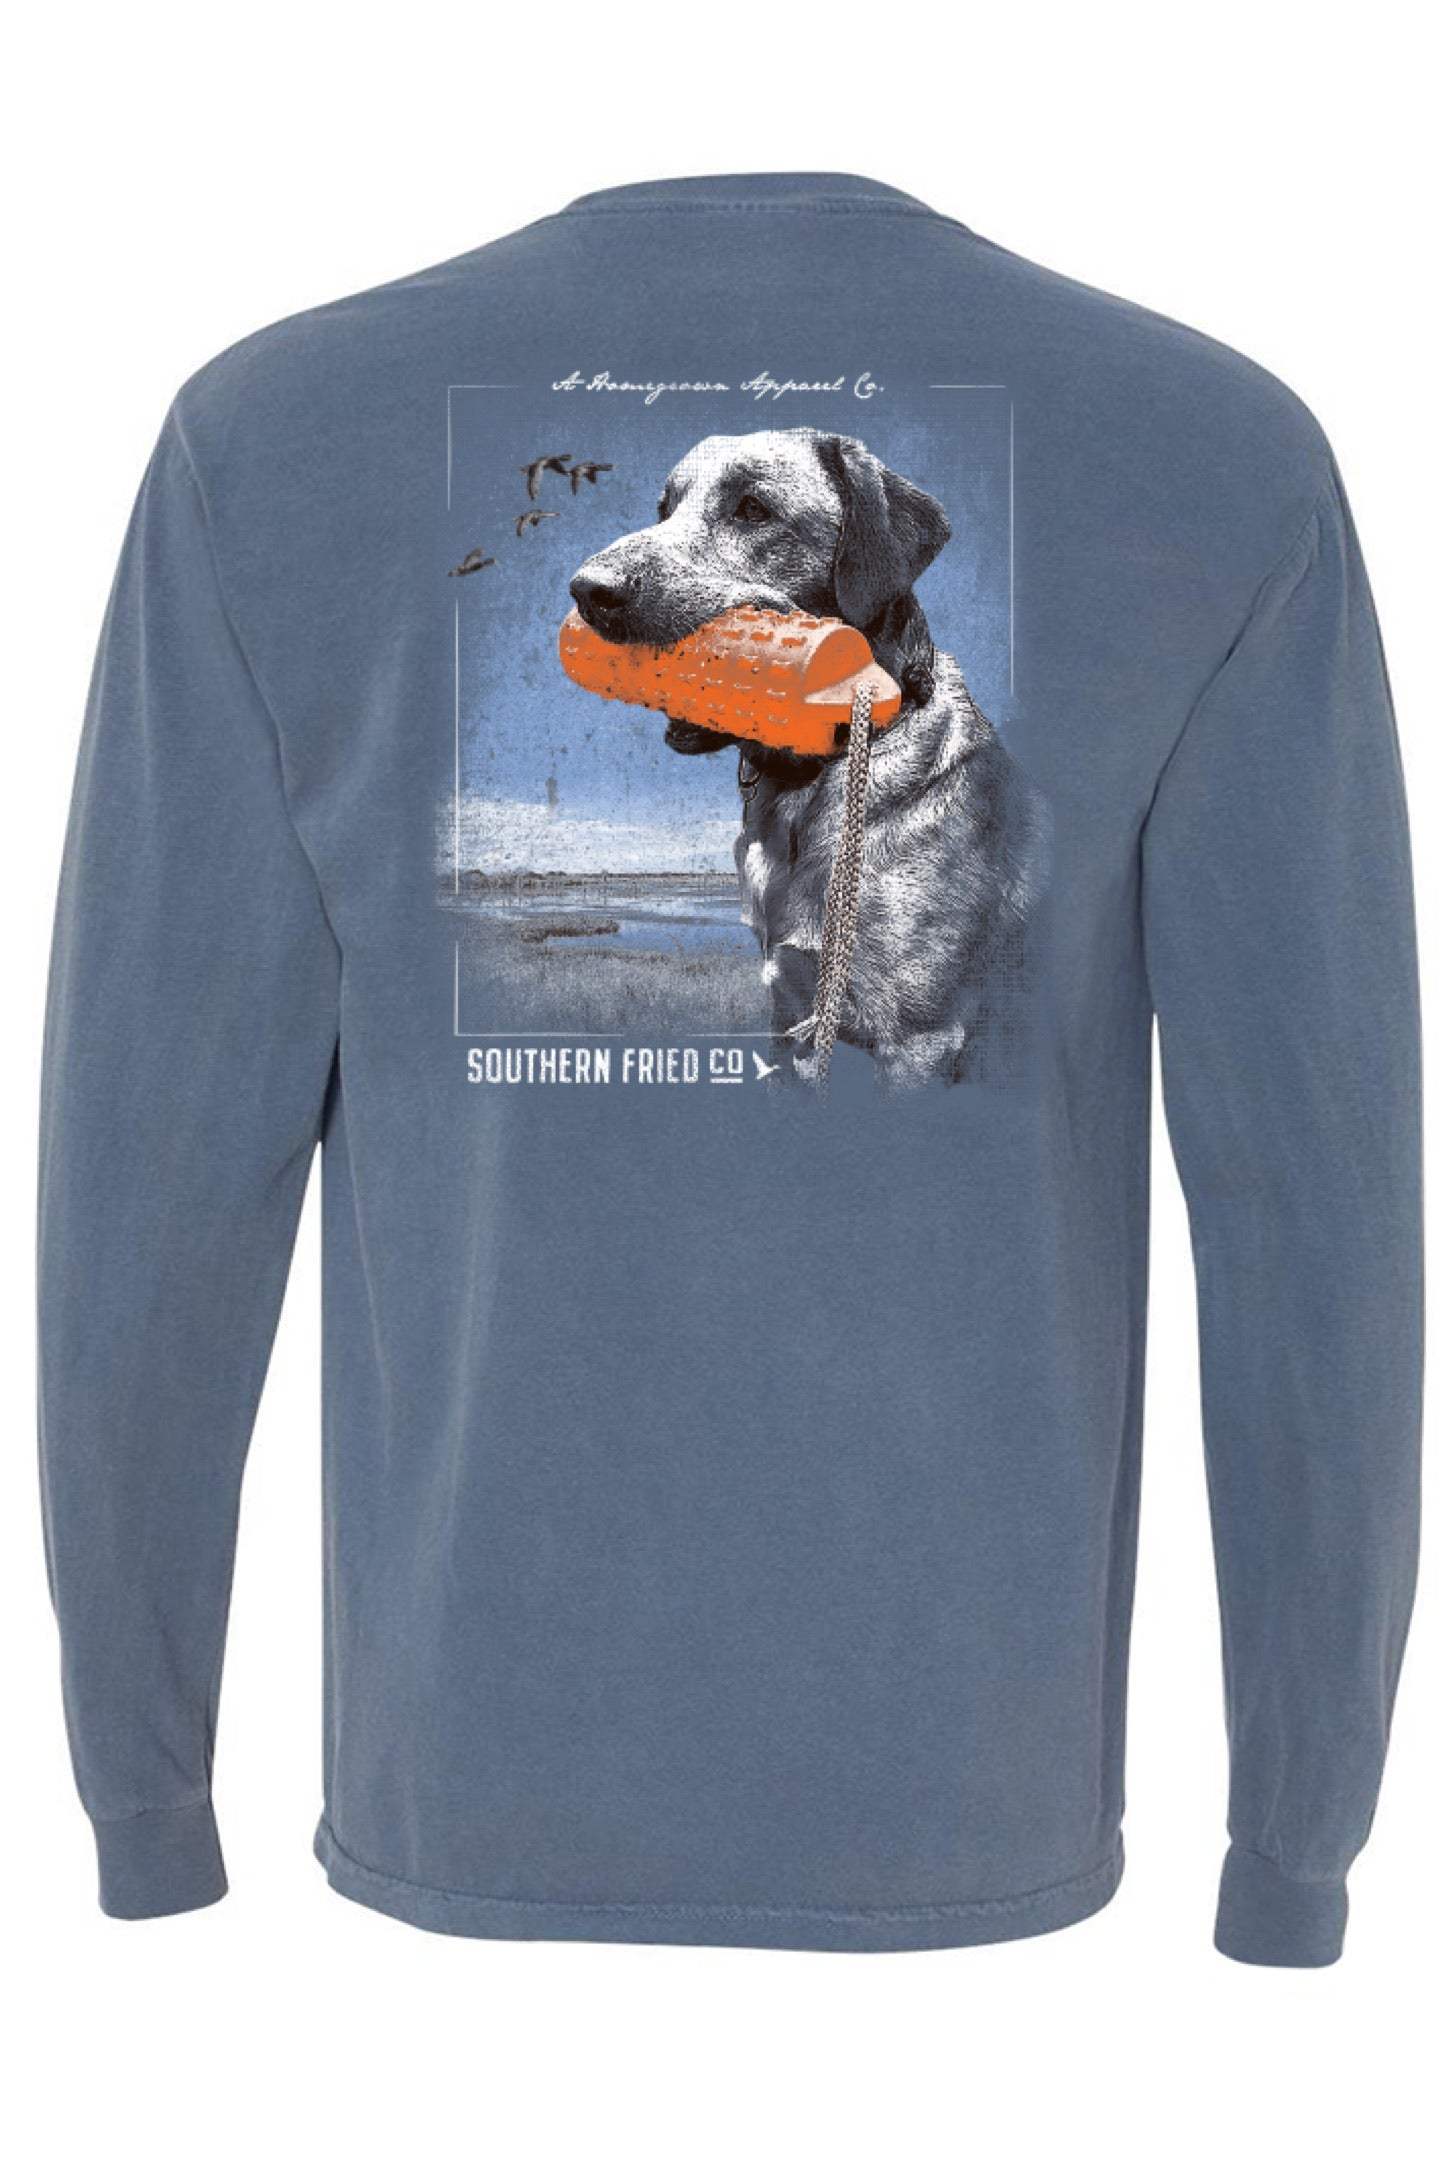 Our Boy, Buck Long Sleeves Tee by Southern Fried Cotton